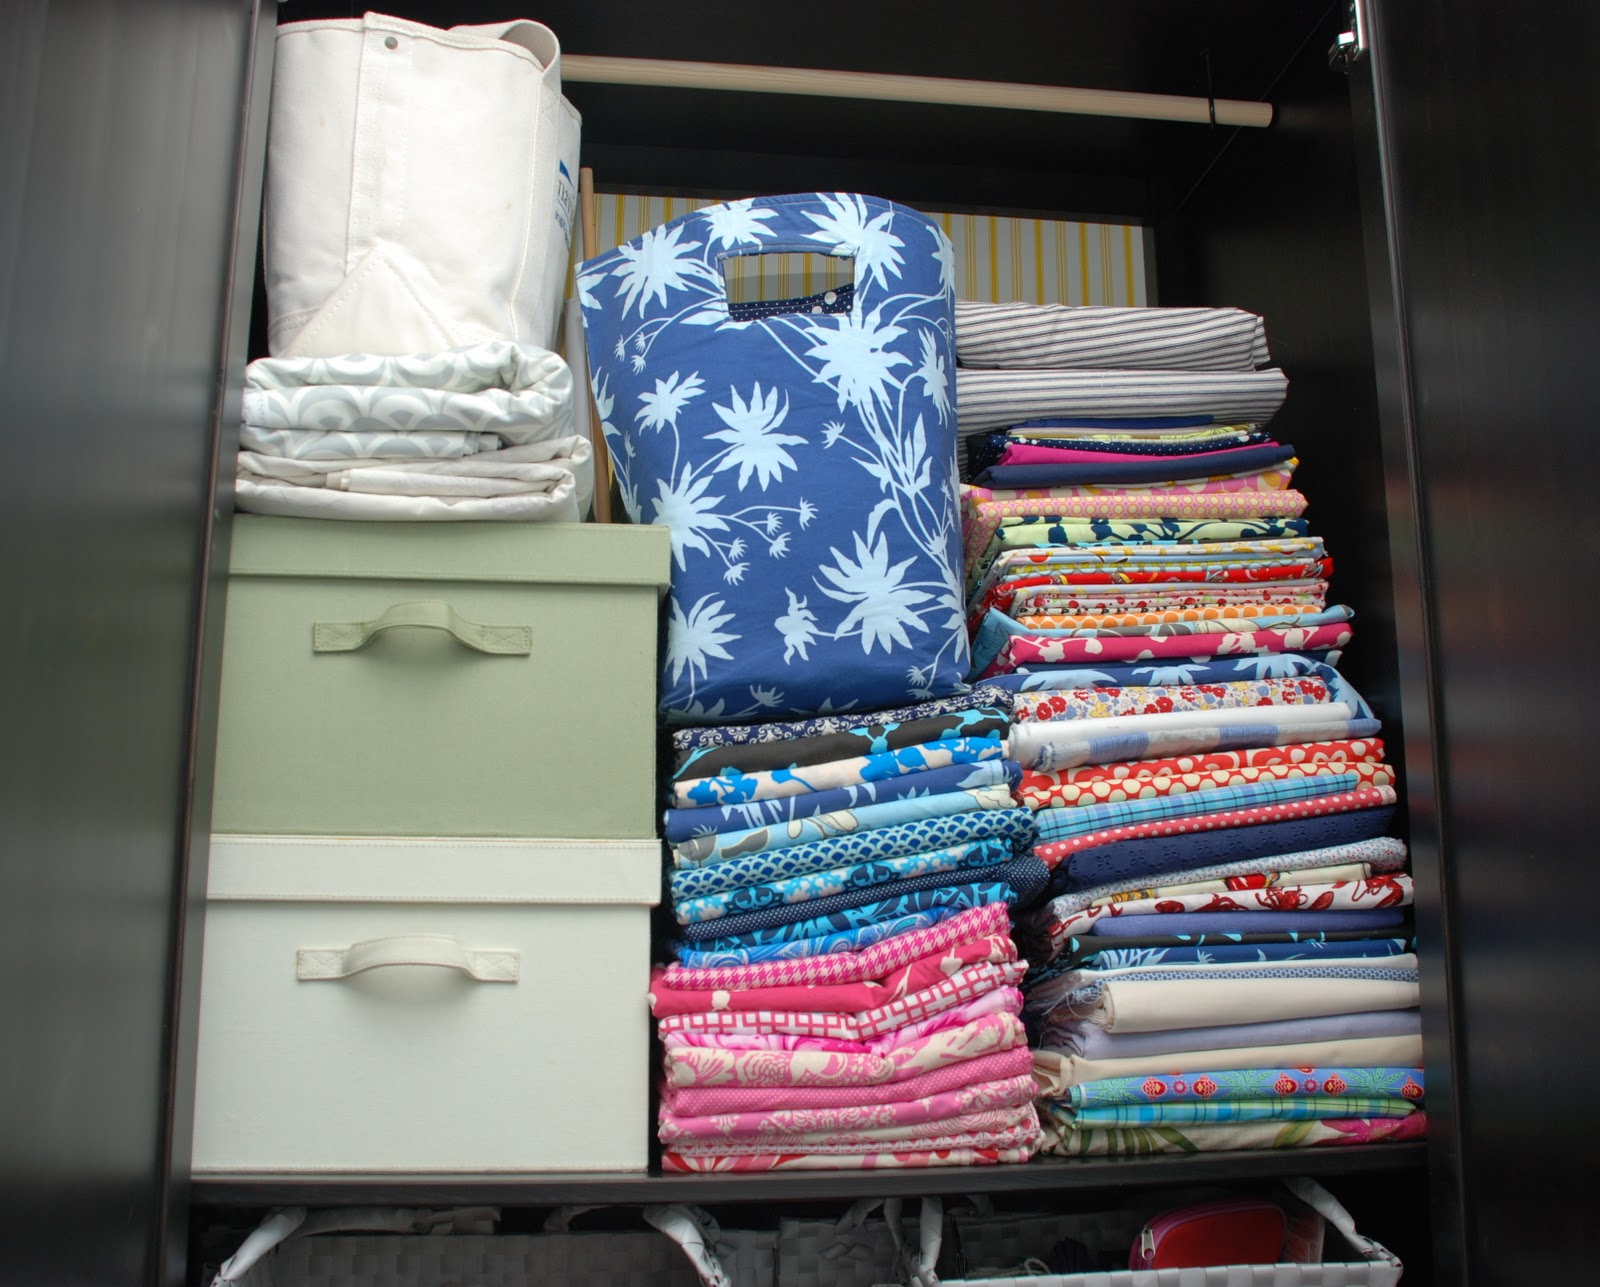 Our little beehive becoming handy through home renovation cooking - As You May Recall I Kept All My Fabric Sewing And Craft Supplies In The Armoire In Our Guest Room Which Was Supposed To Be A Temporary Storage Area